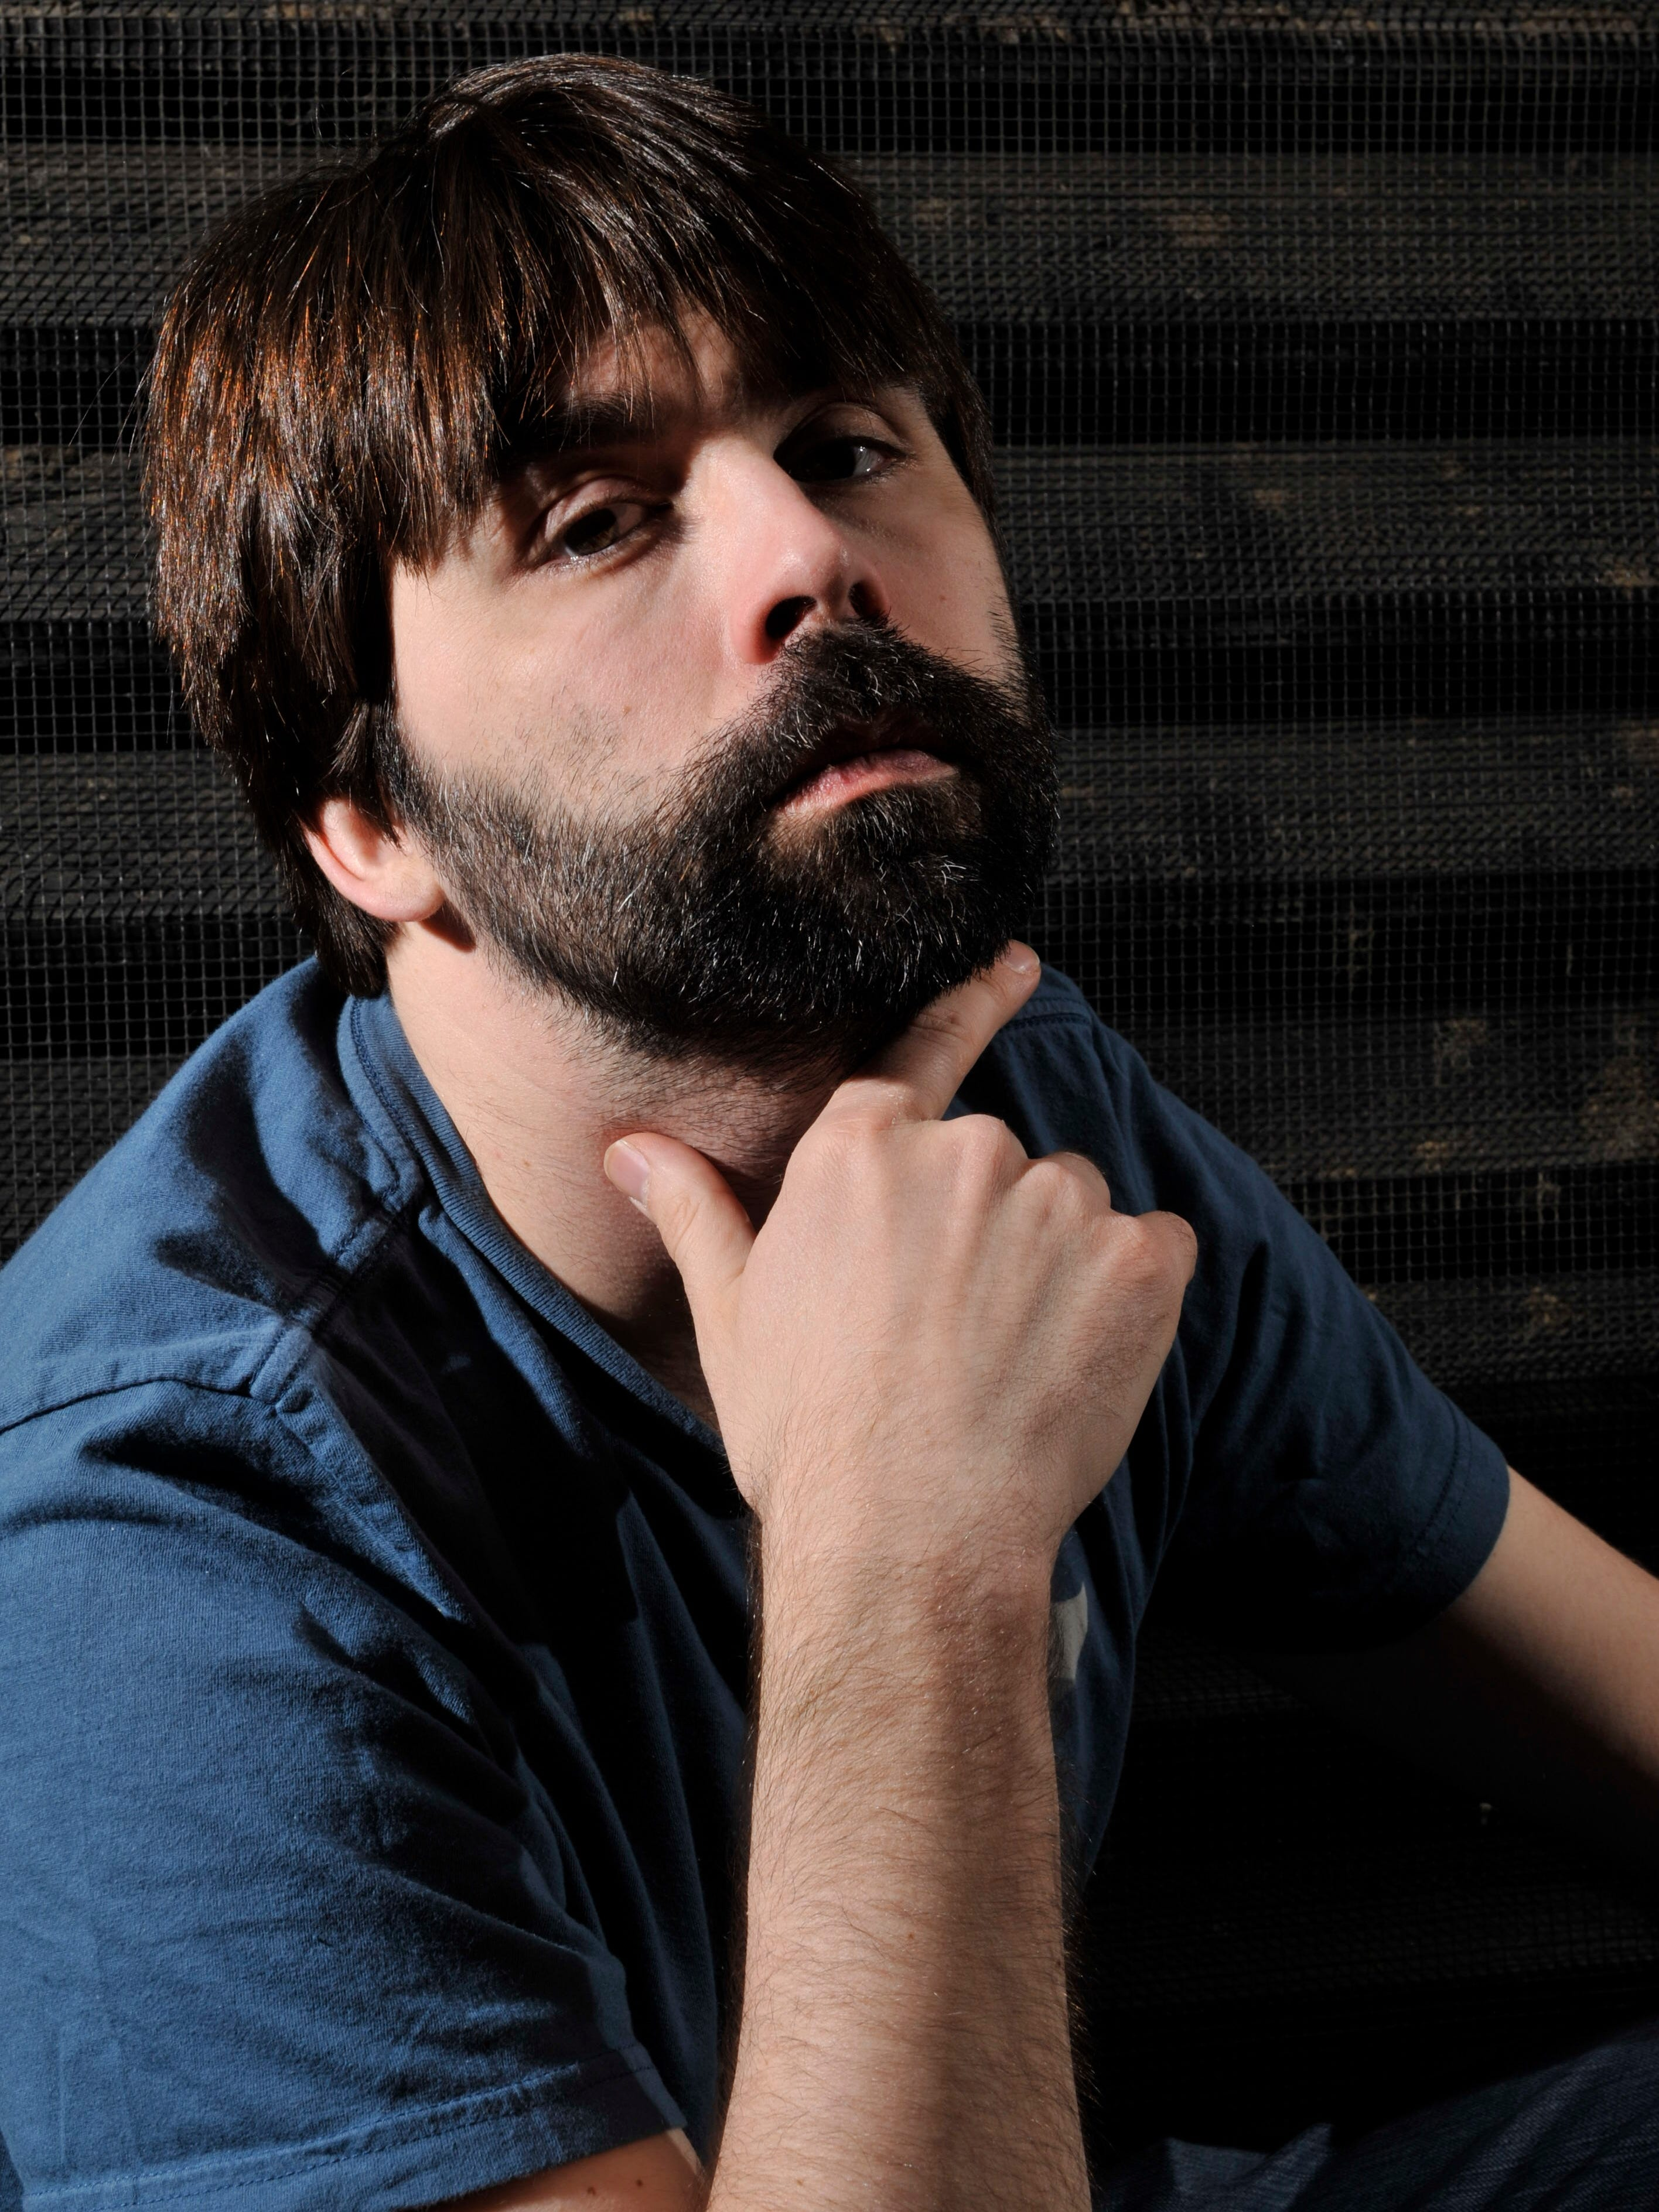 Sunday Geekersation The Many Keys To Joe Hill S Kingdom Joe hill, author and son of legendary horror novelist stephen king, has revealed the manner by which he was rejected as a doctor who writer. sunday geekersation the many keys to